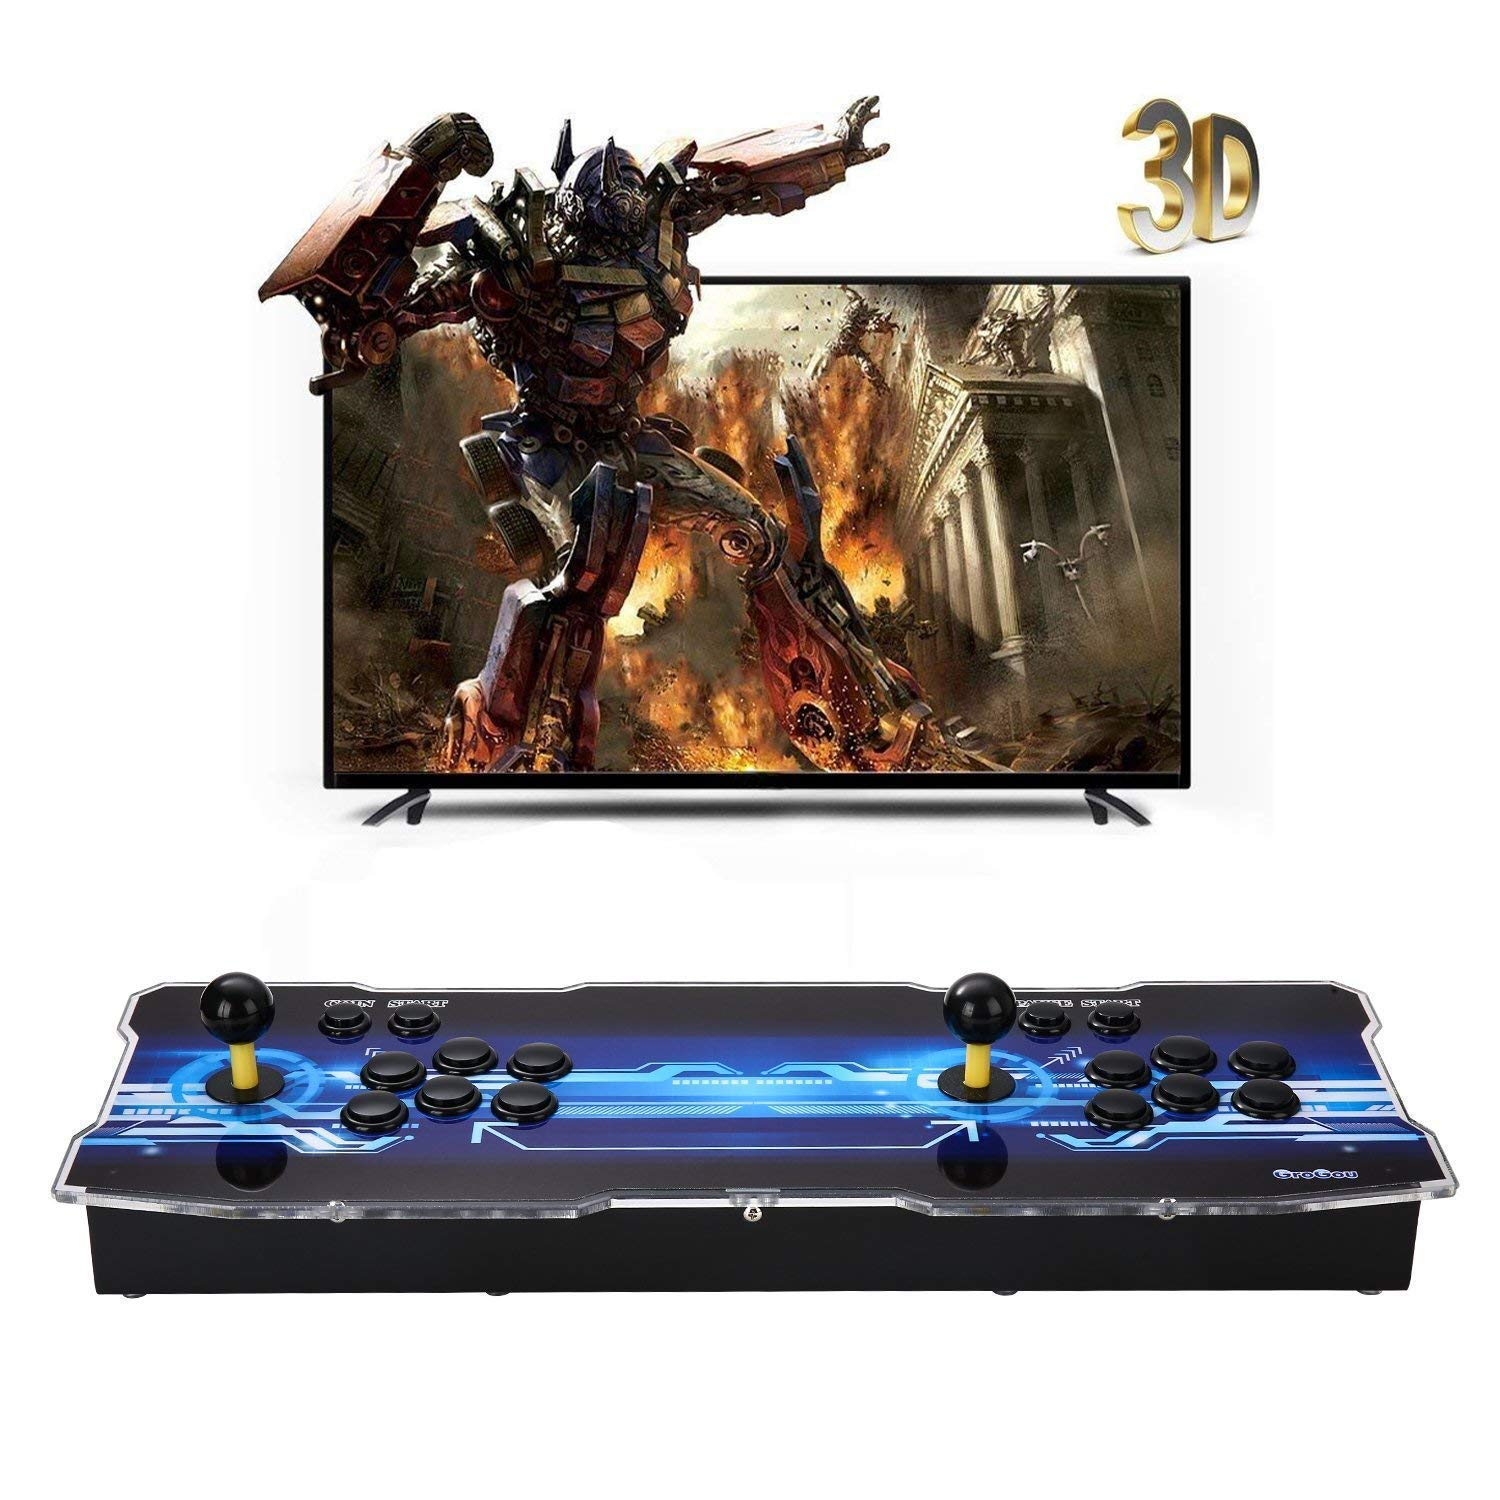 [2350 HD Retro Games] 3D Pandoras Box Arcade Video Game Console 1080P Game System with 2350 Games Supports 3D Games (Black) 1920x1080 by TanDer (Image #2)